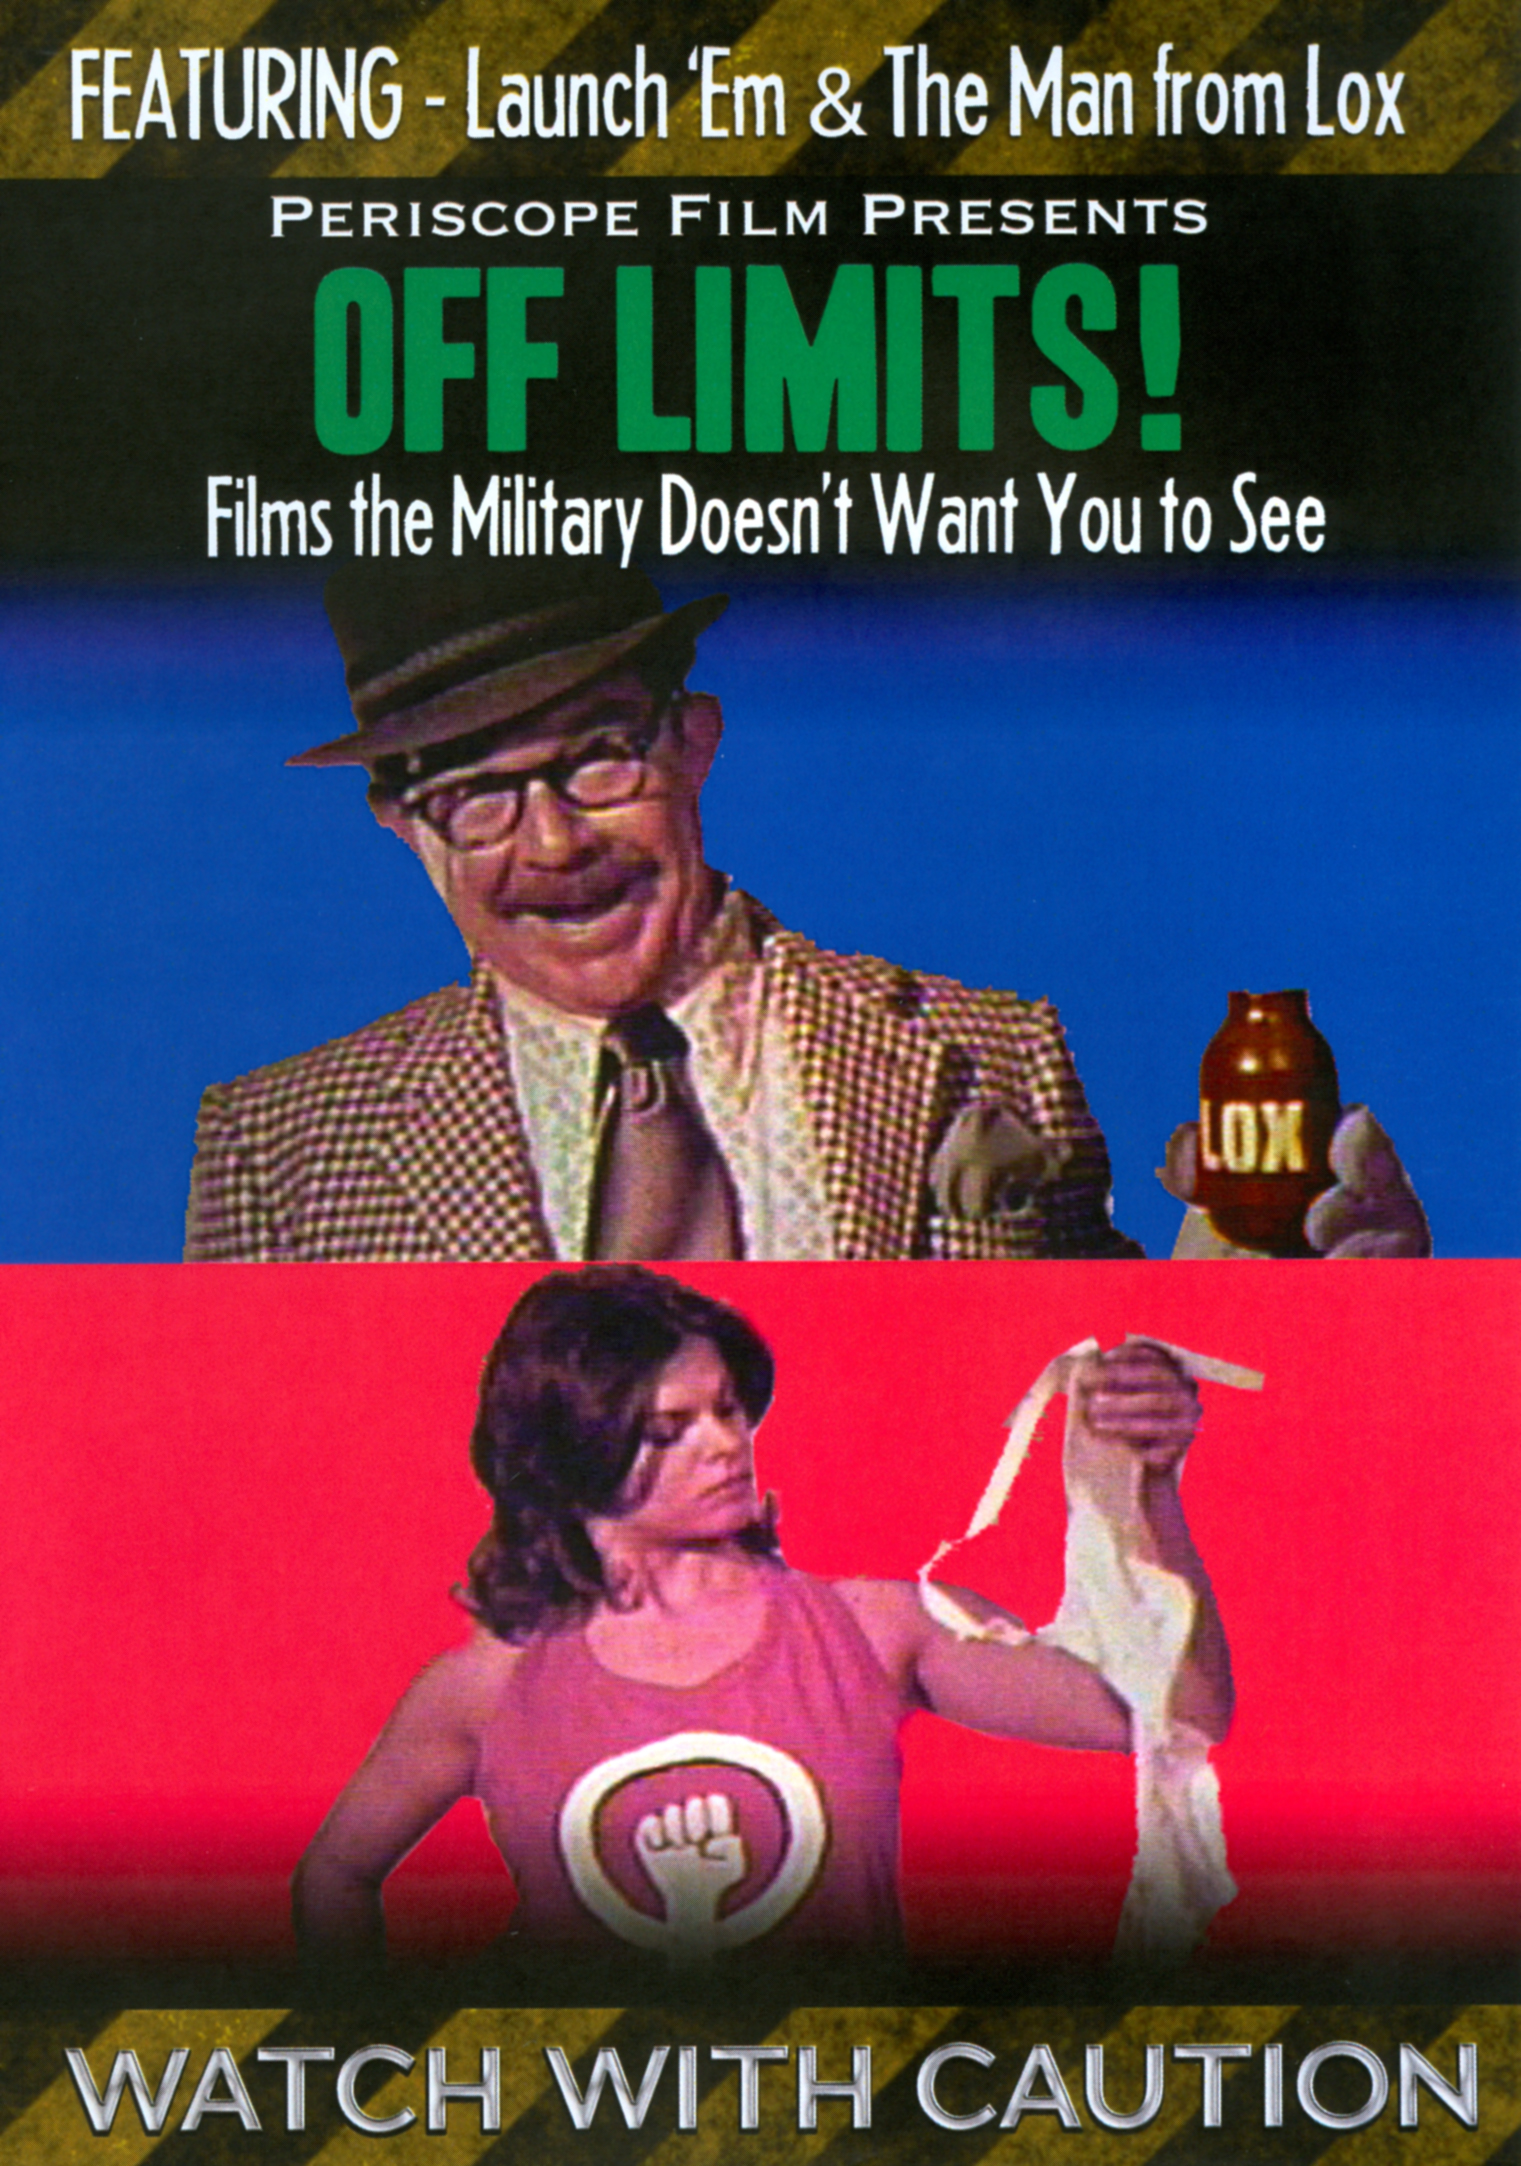 Off Limits!: Films the Military Doesn't Want You to See